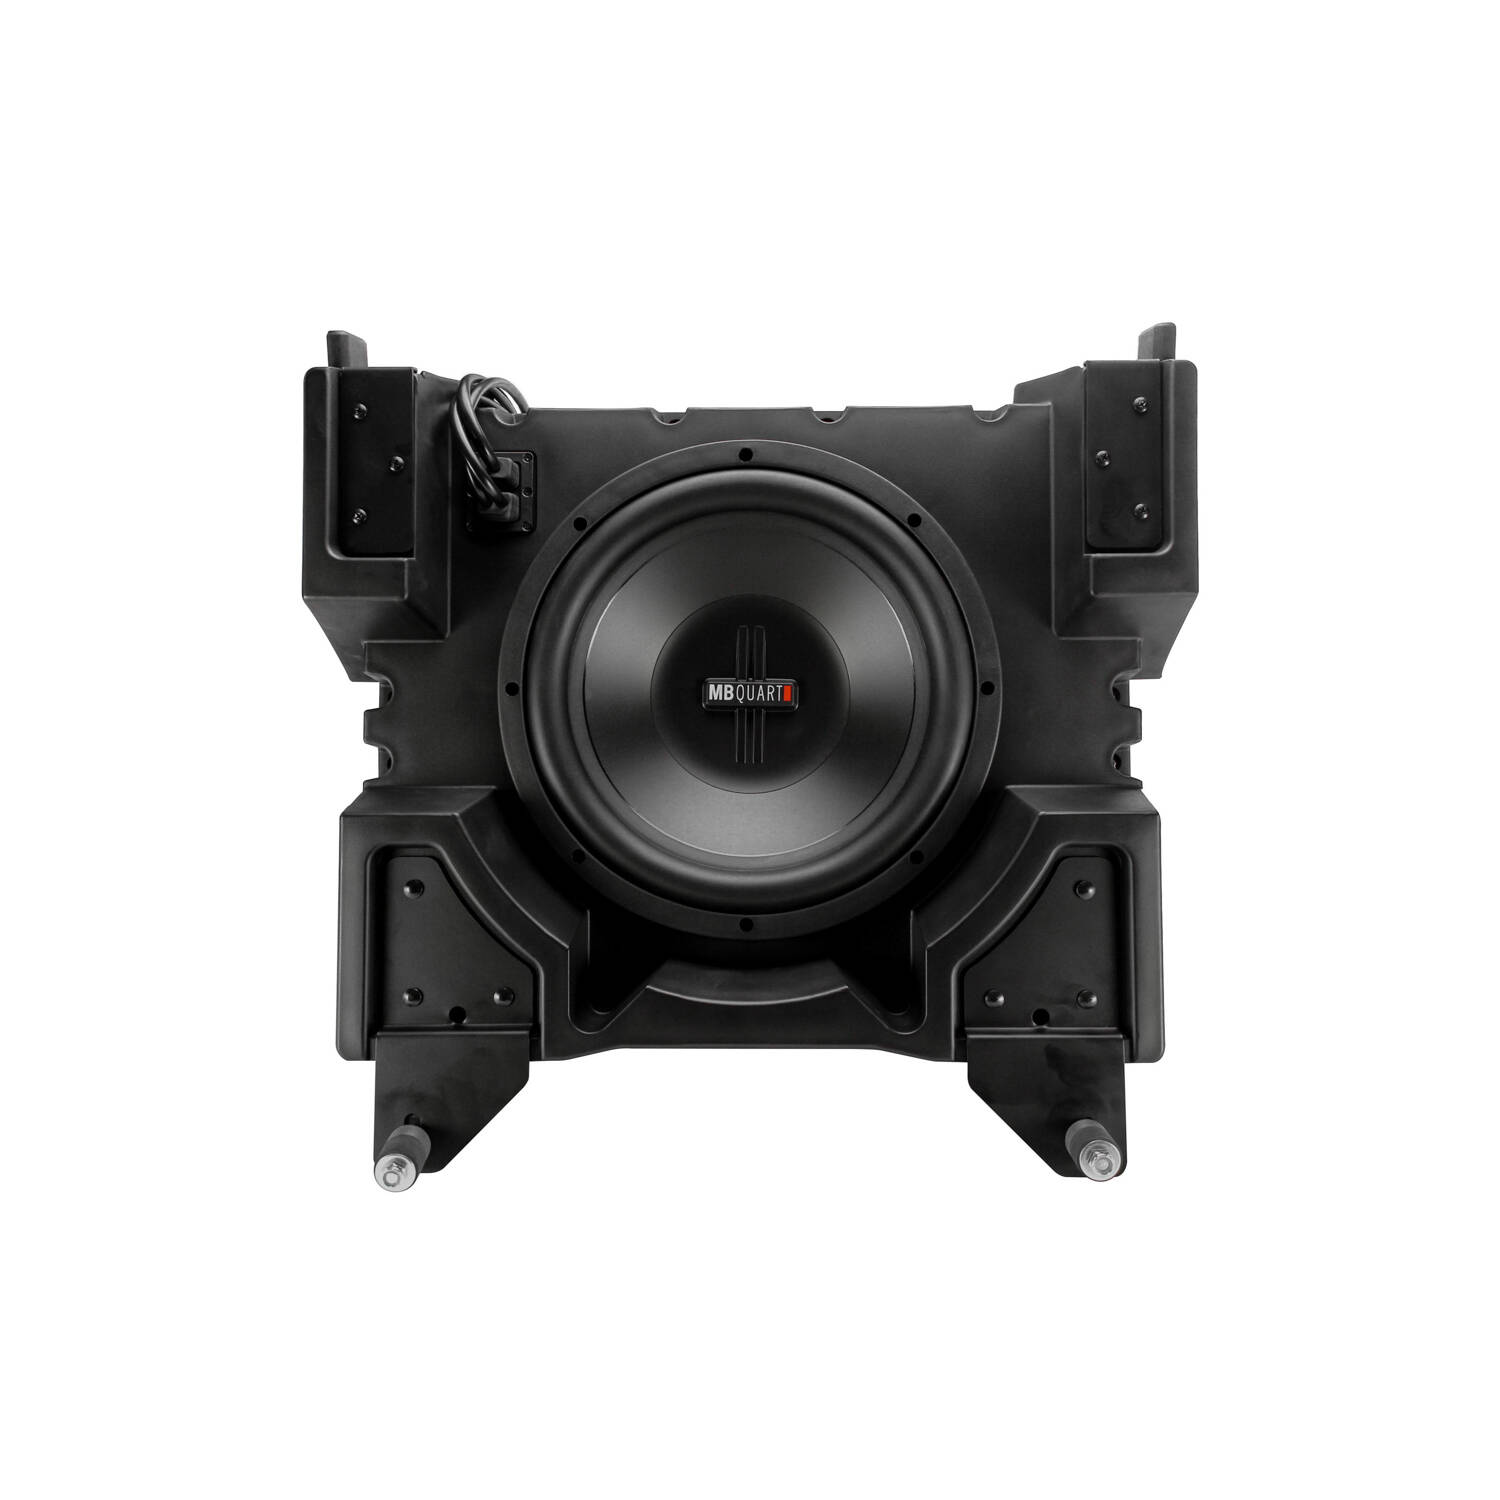 "12"" MaxBoost Subwoofer by MB Quart®"